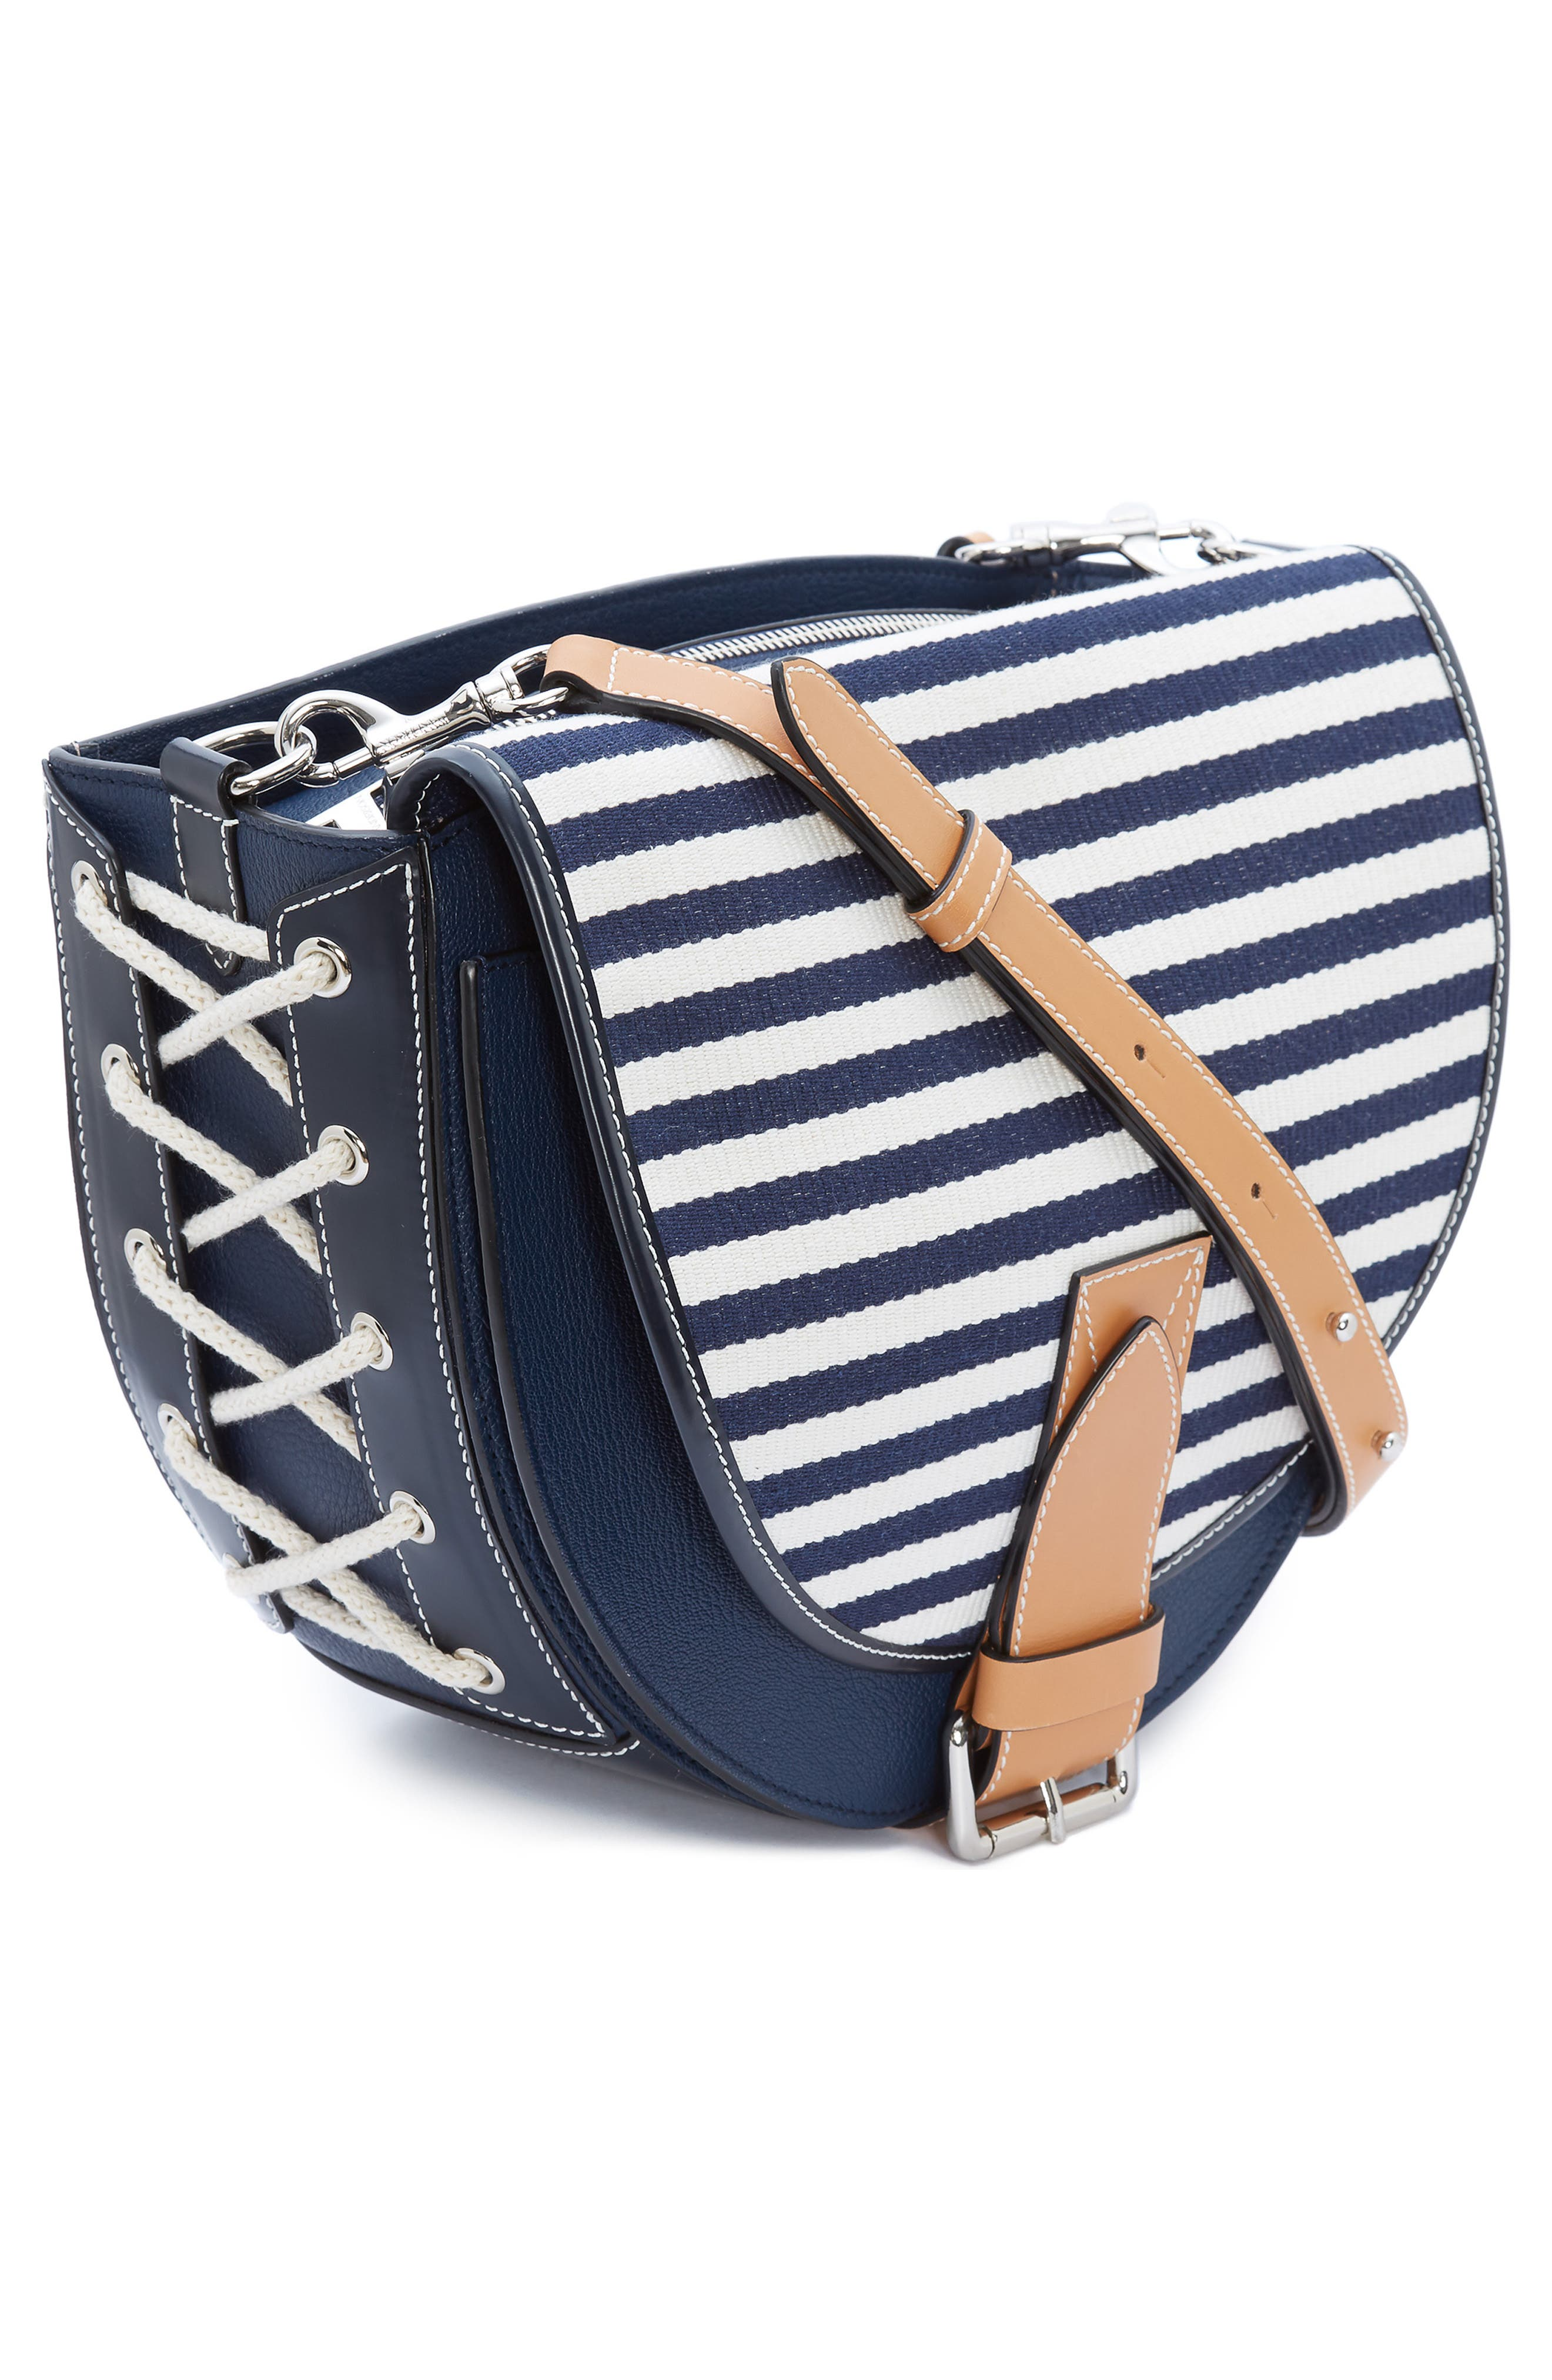 JW ANDERSON,                             Small Bike Leather & Canvas Crossbody Bag,                             Alternate thumbnail 5, color,                             NAVY BRETON